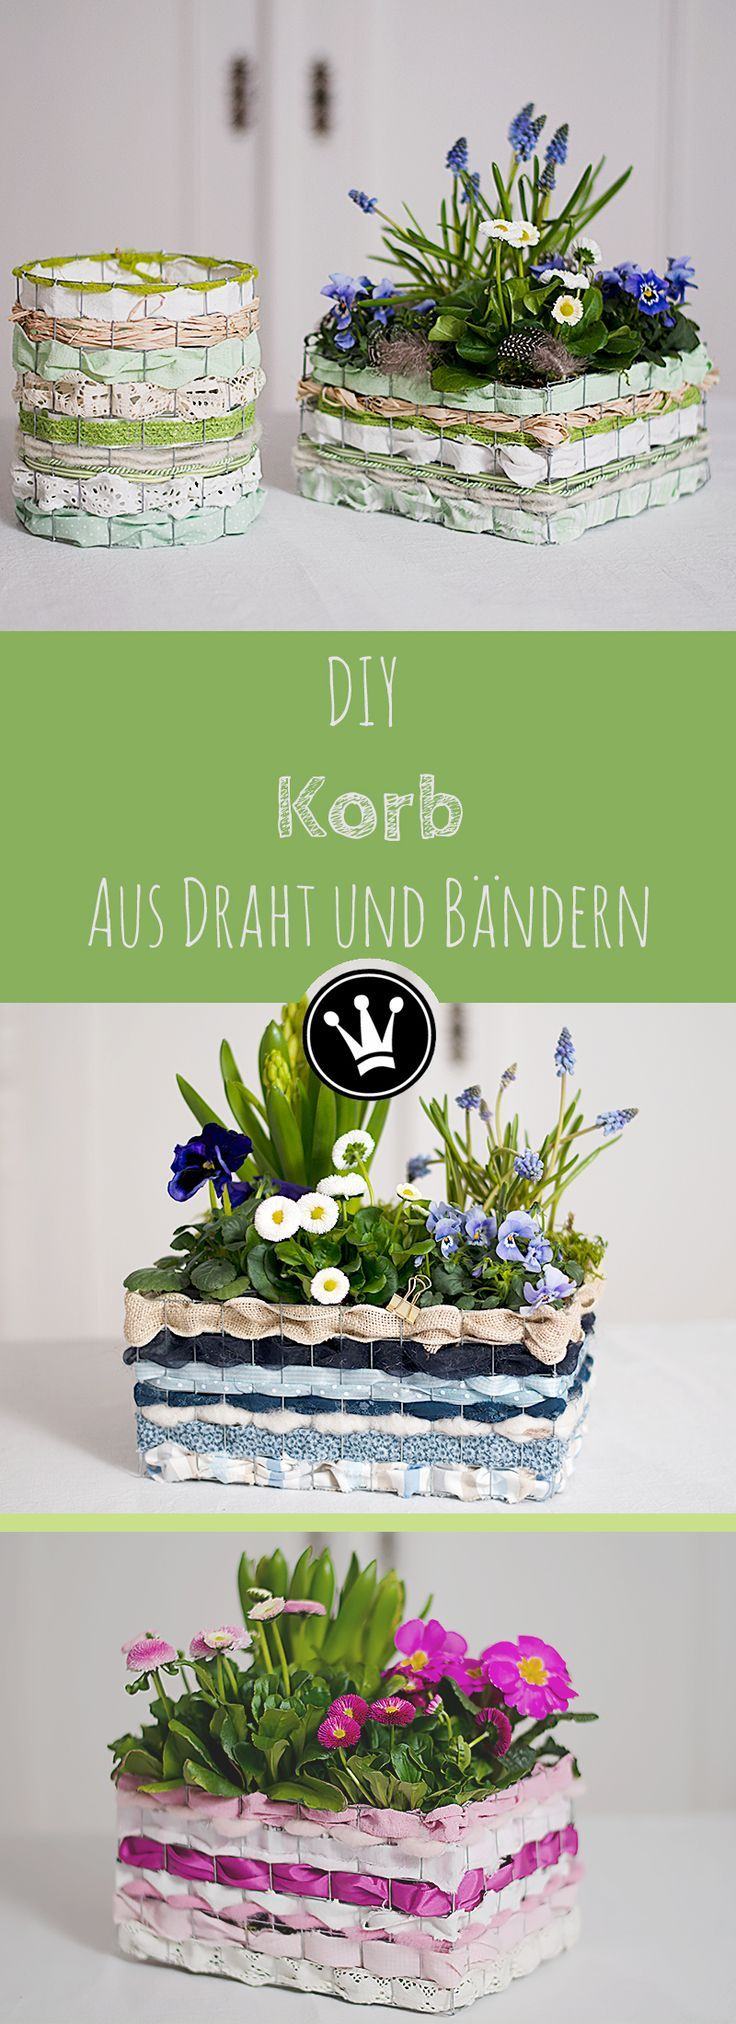 DIY - Making a basket made of Kanninchendraht, ribbons and strips of cloth itself. From Dr ...  - DIY - Frühling und Ostern -